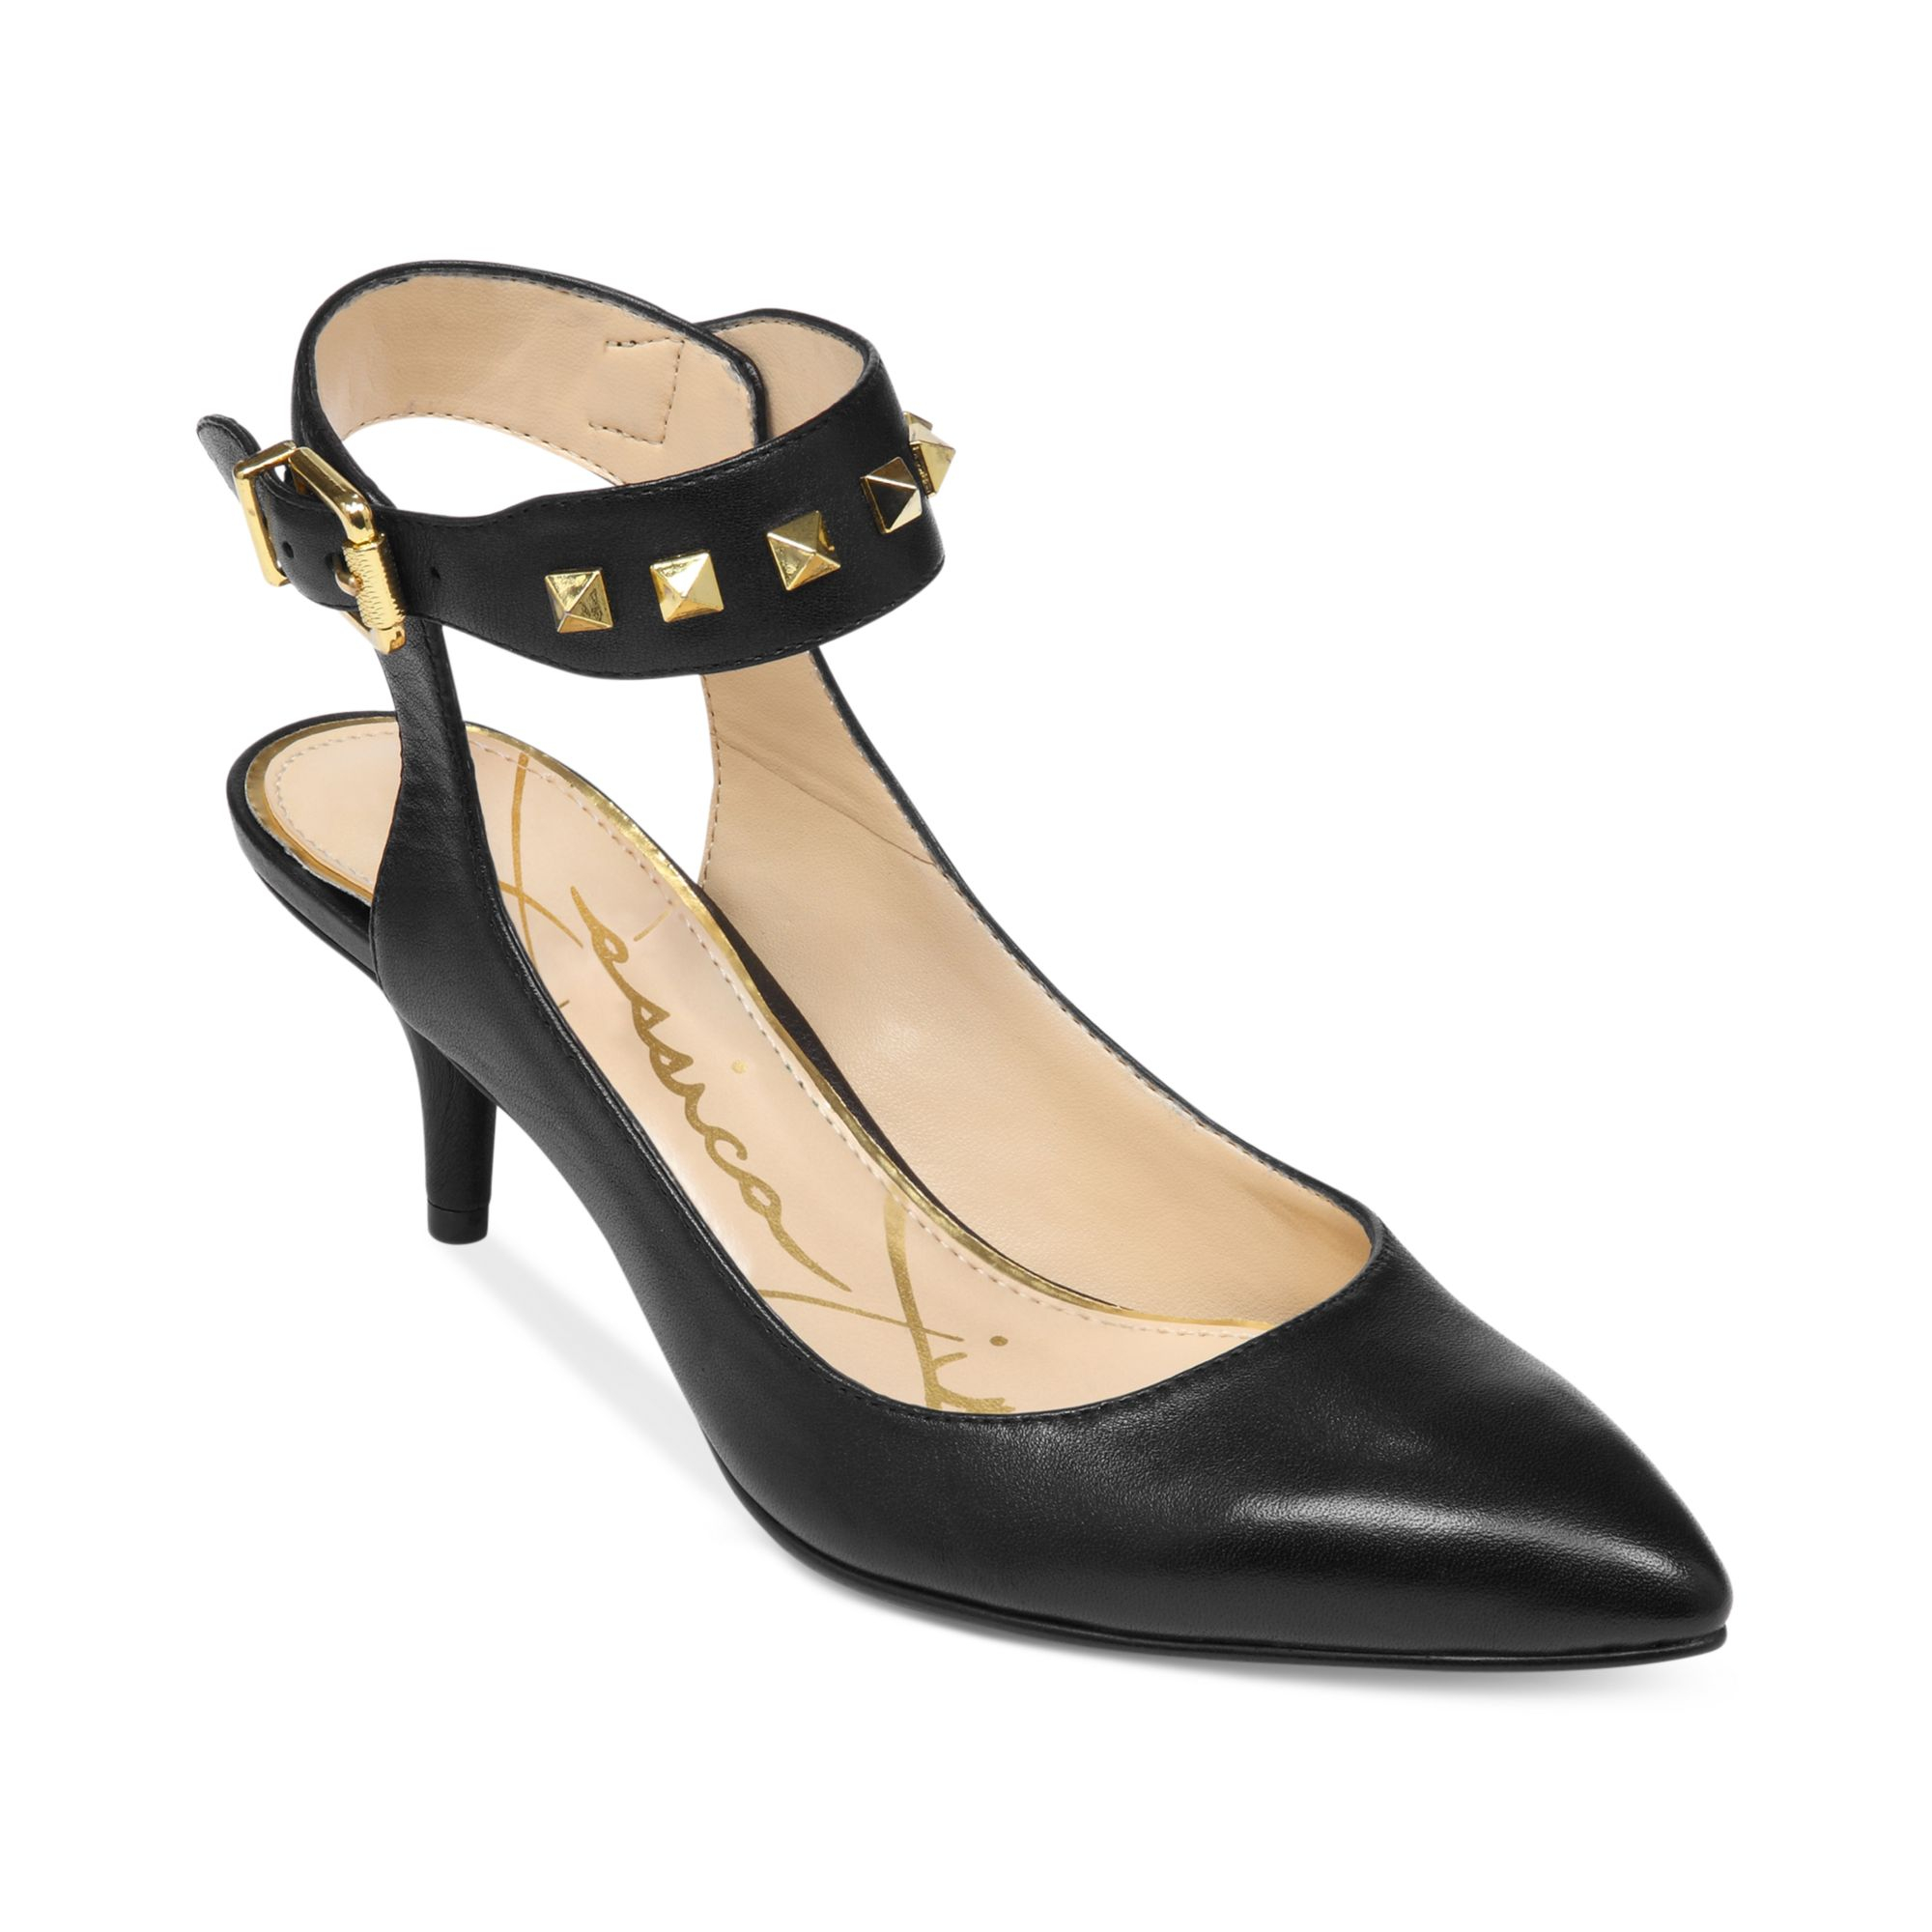 Jessica simpson Mid Heel Ankle Strap Pumps in Black | Lyst